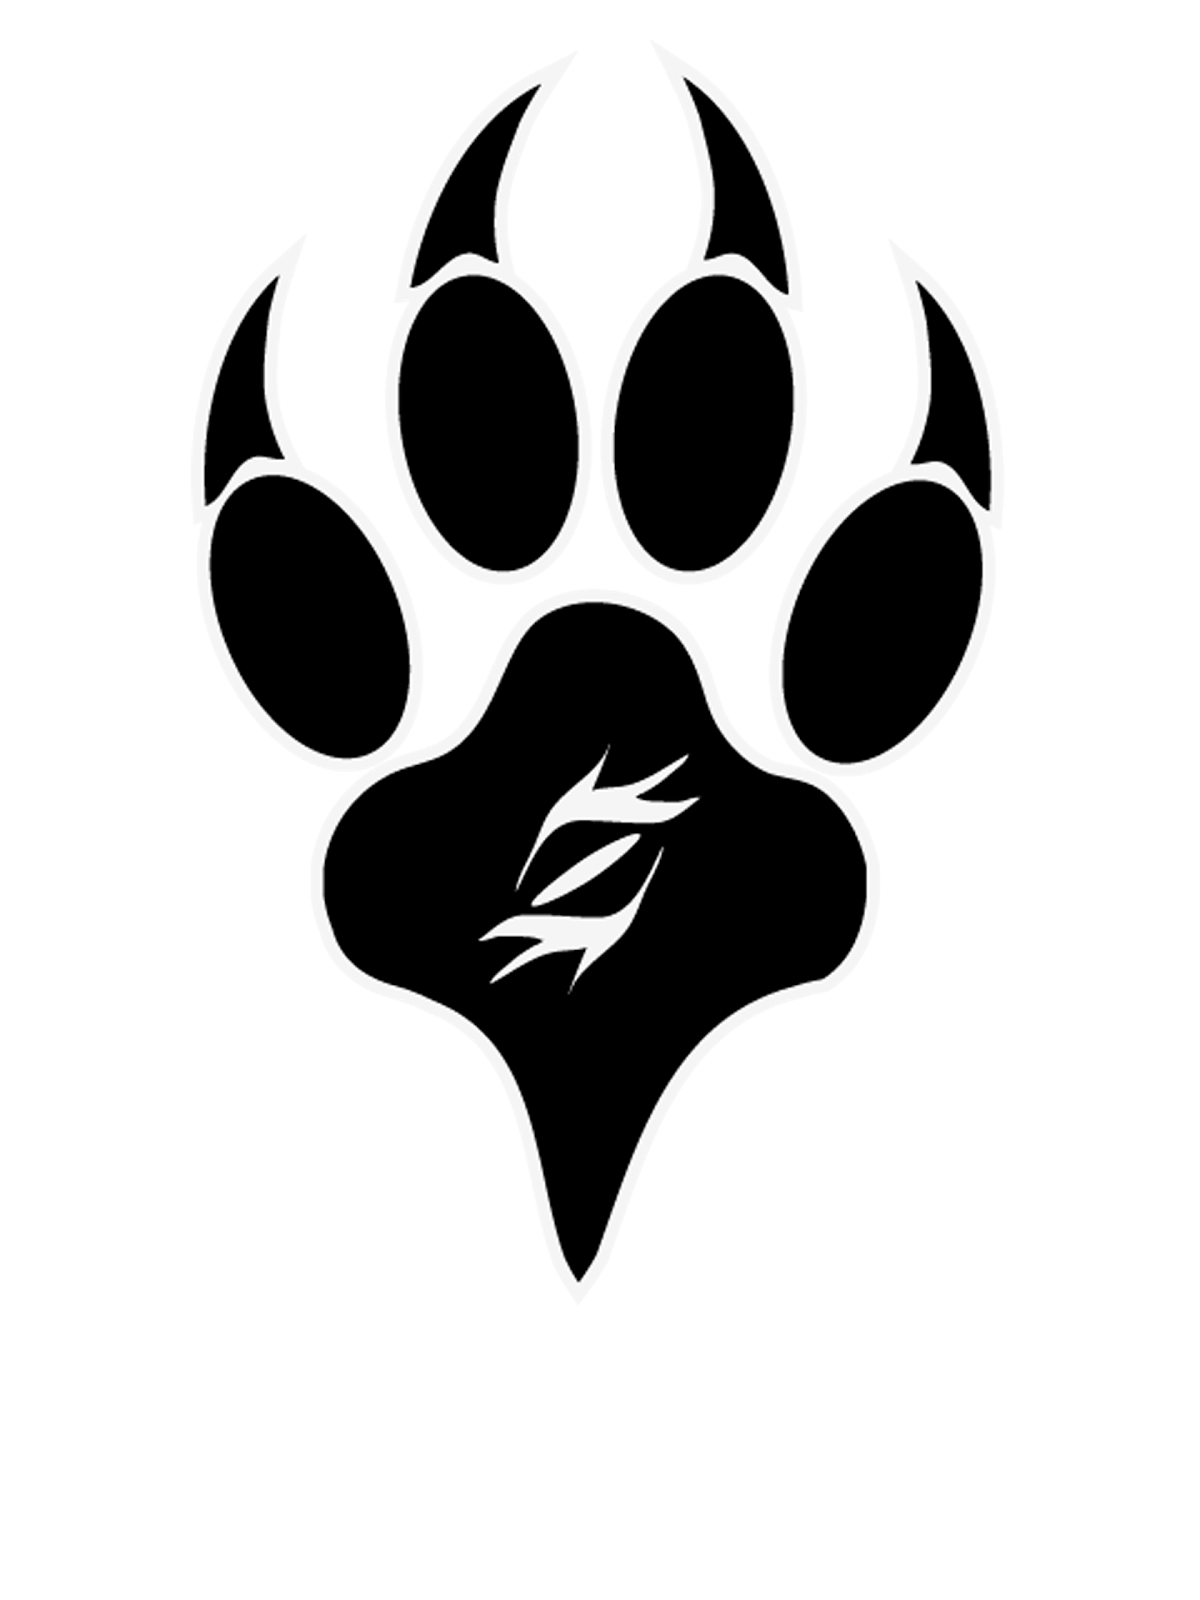 wolf logo viewing gallery for wolf logo design man cave sports